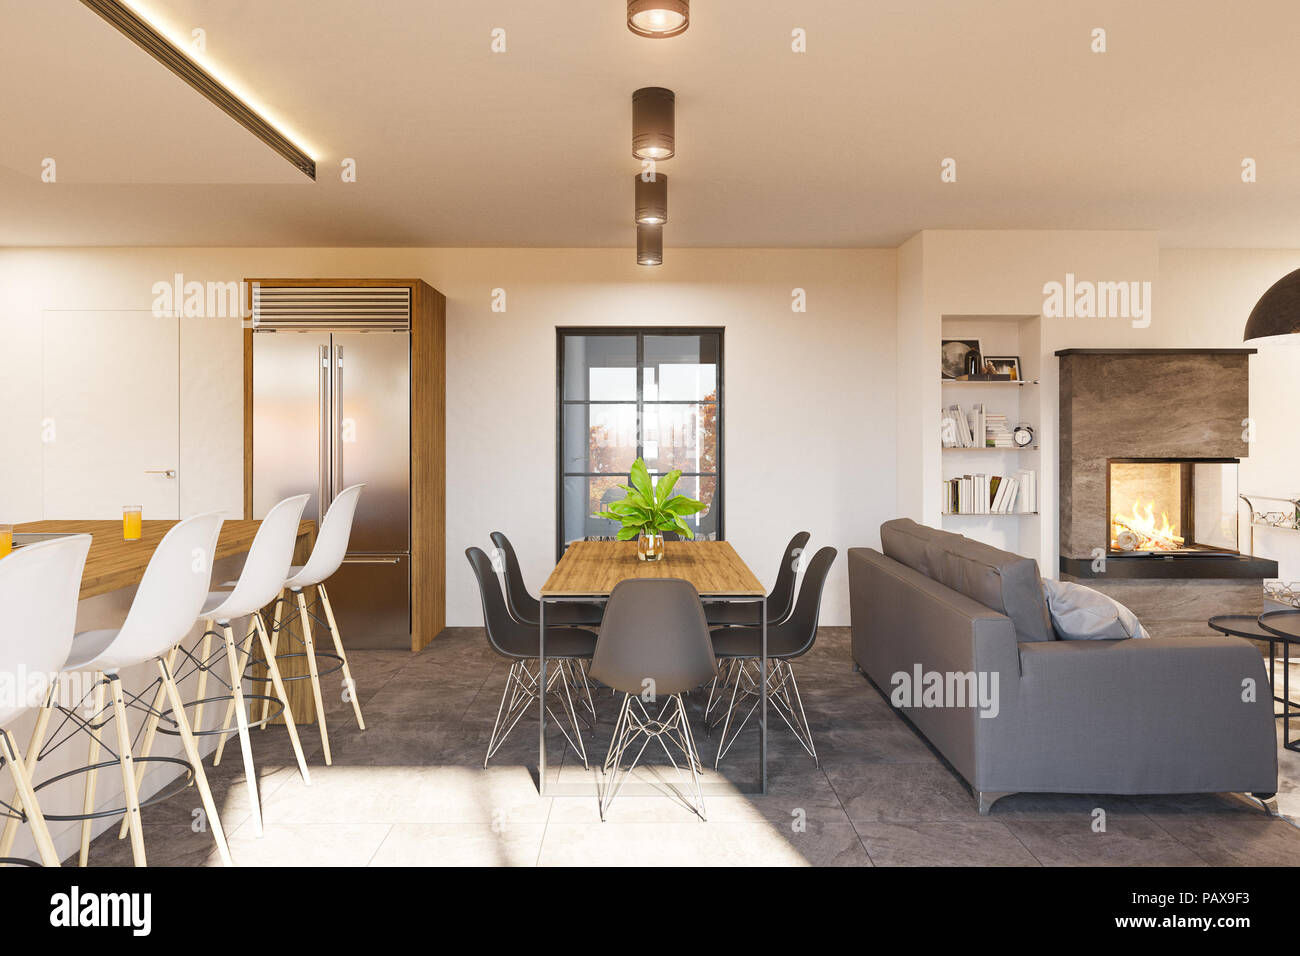 Modern Living Room With Kitchen Interior Design 3d Render Modern Living Room And Kitchen Interior Design With